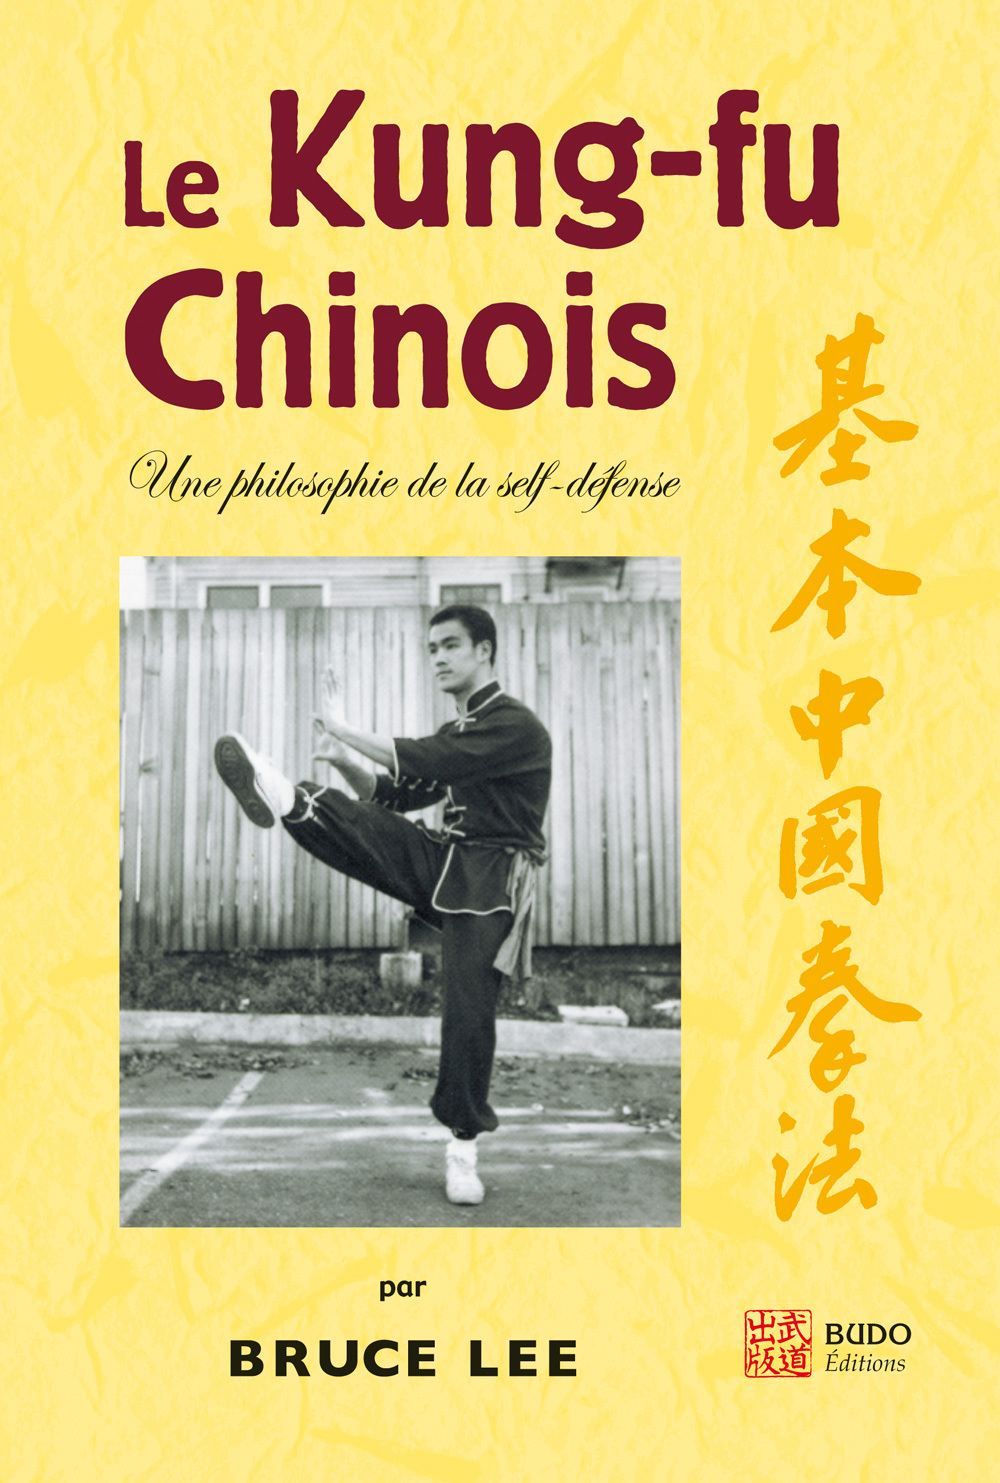 LE KUNG FU CHINOIS